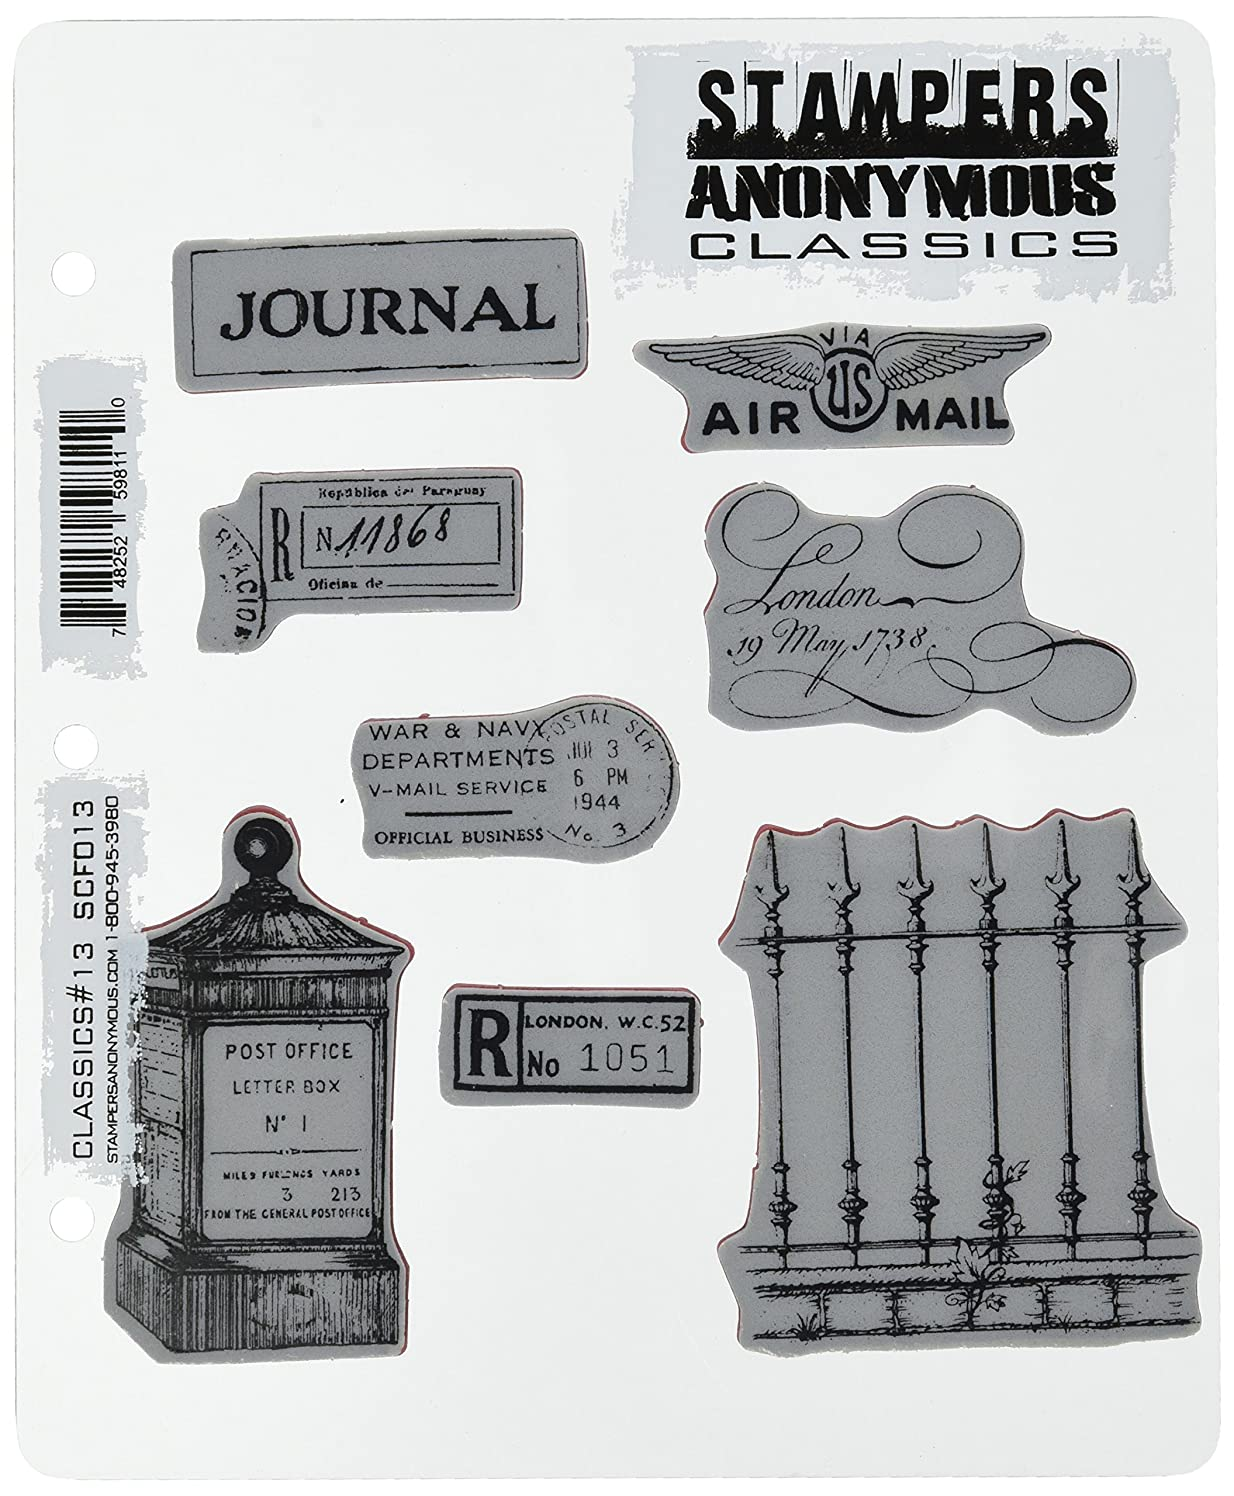 Stampers Anonymous Rubber Stamp Set, 7-Inch by 8.5-Inch, Classics Number 13